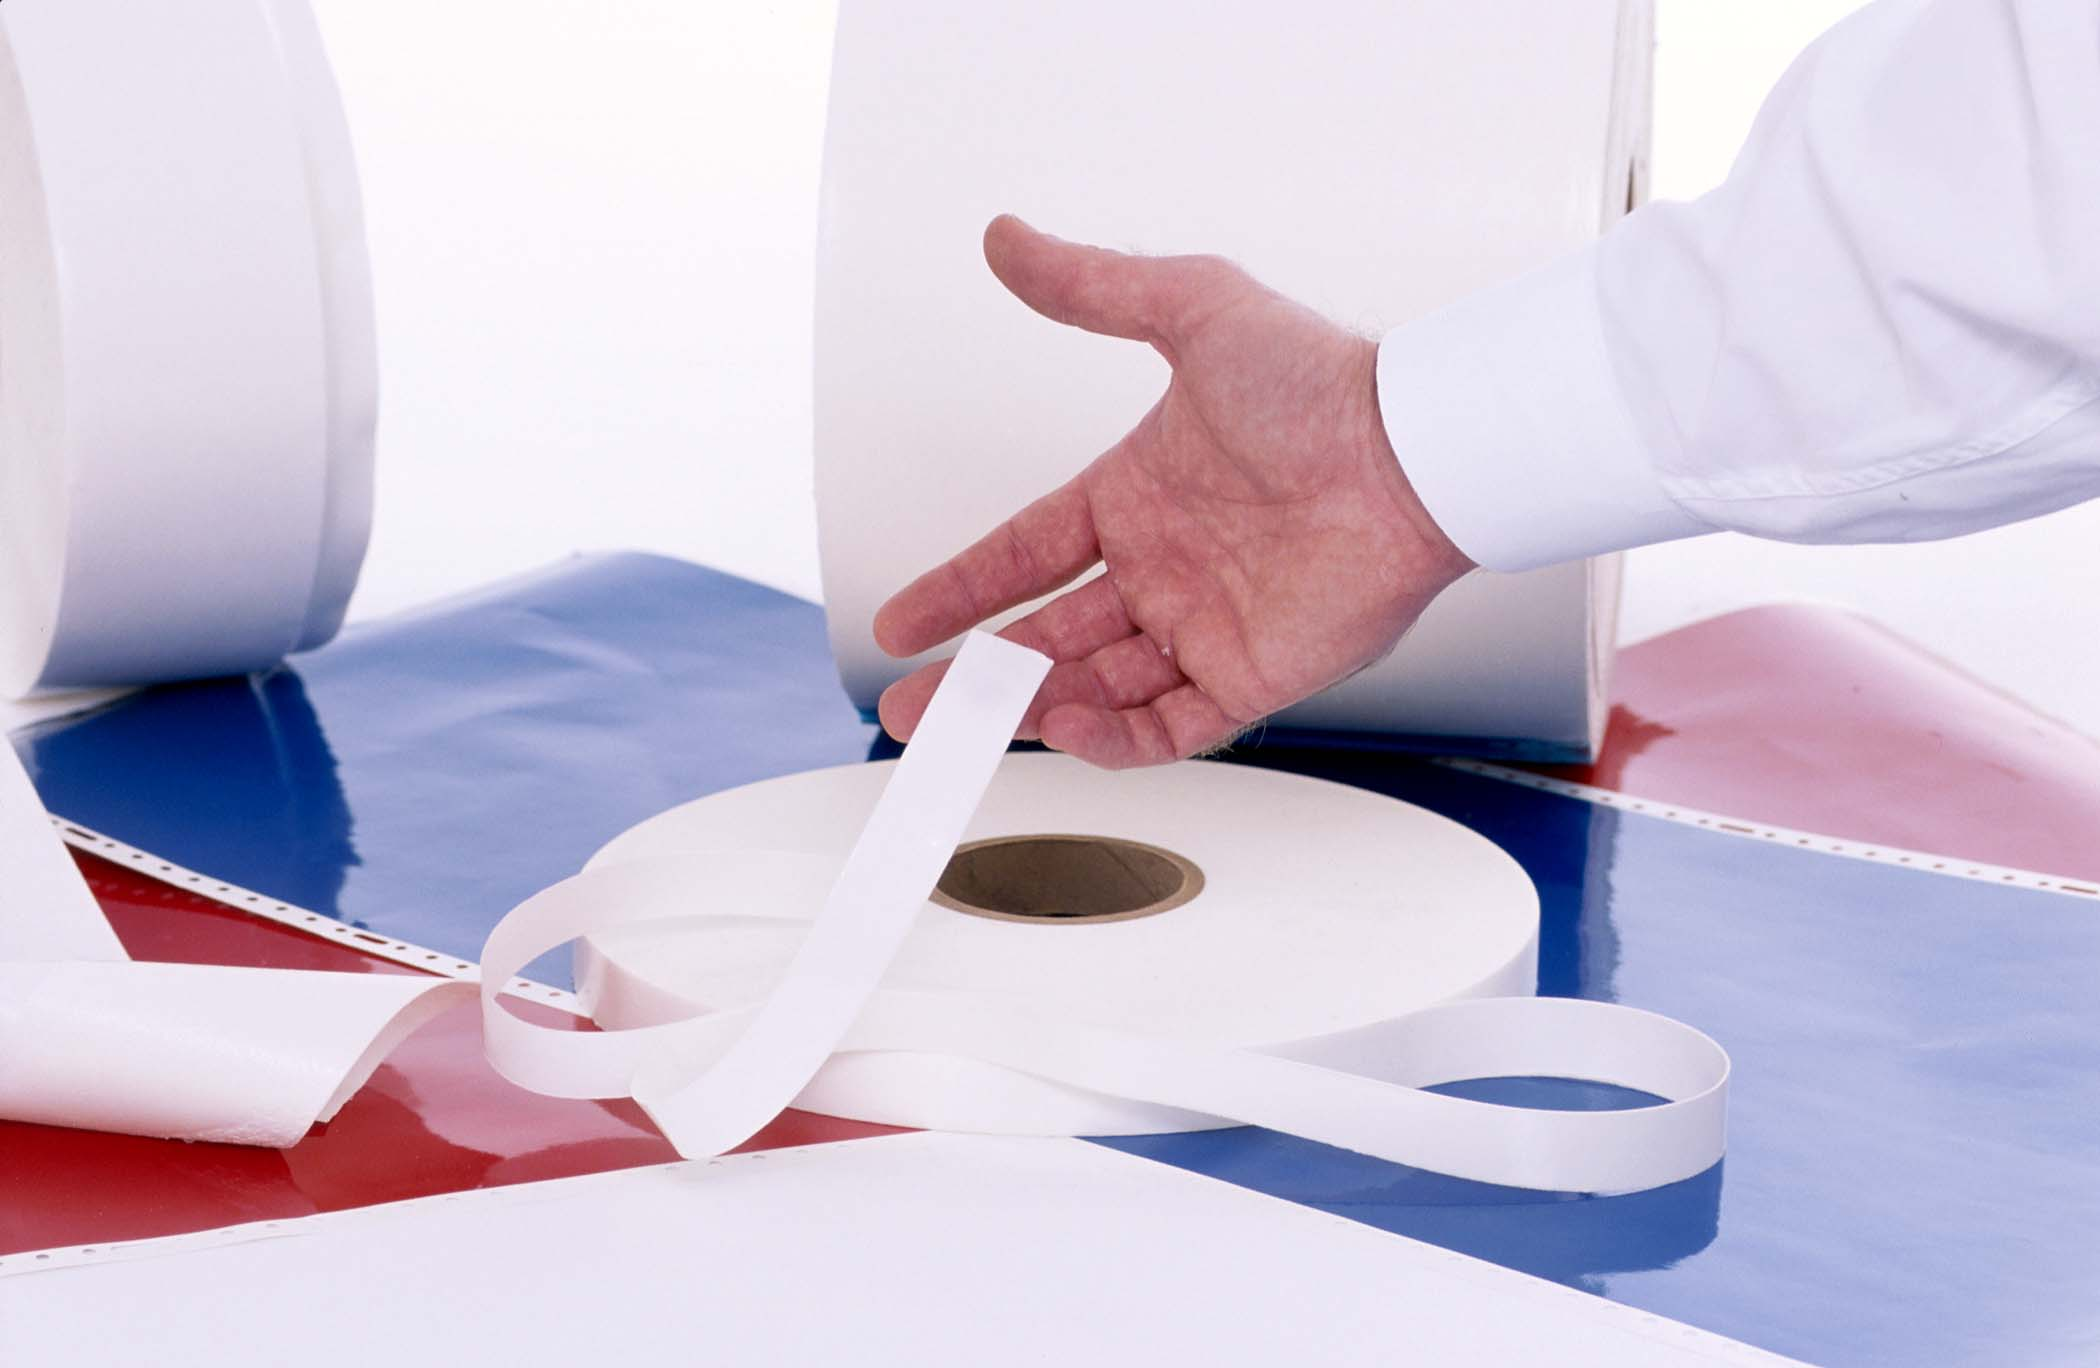 Pressure Sensitive Tape Market Strapping Growth Analysis Based On Future Opportunities by 2031